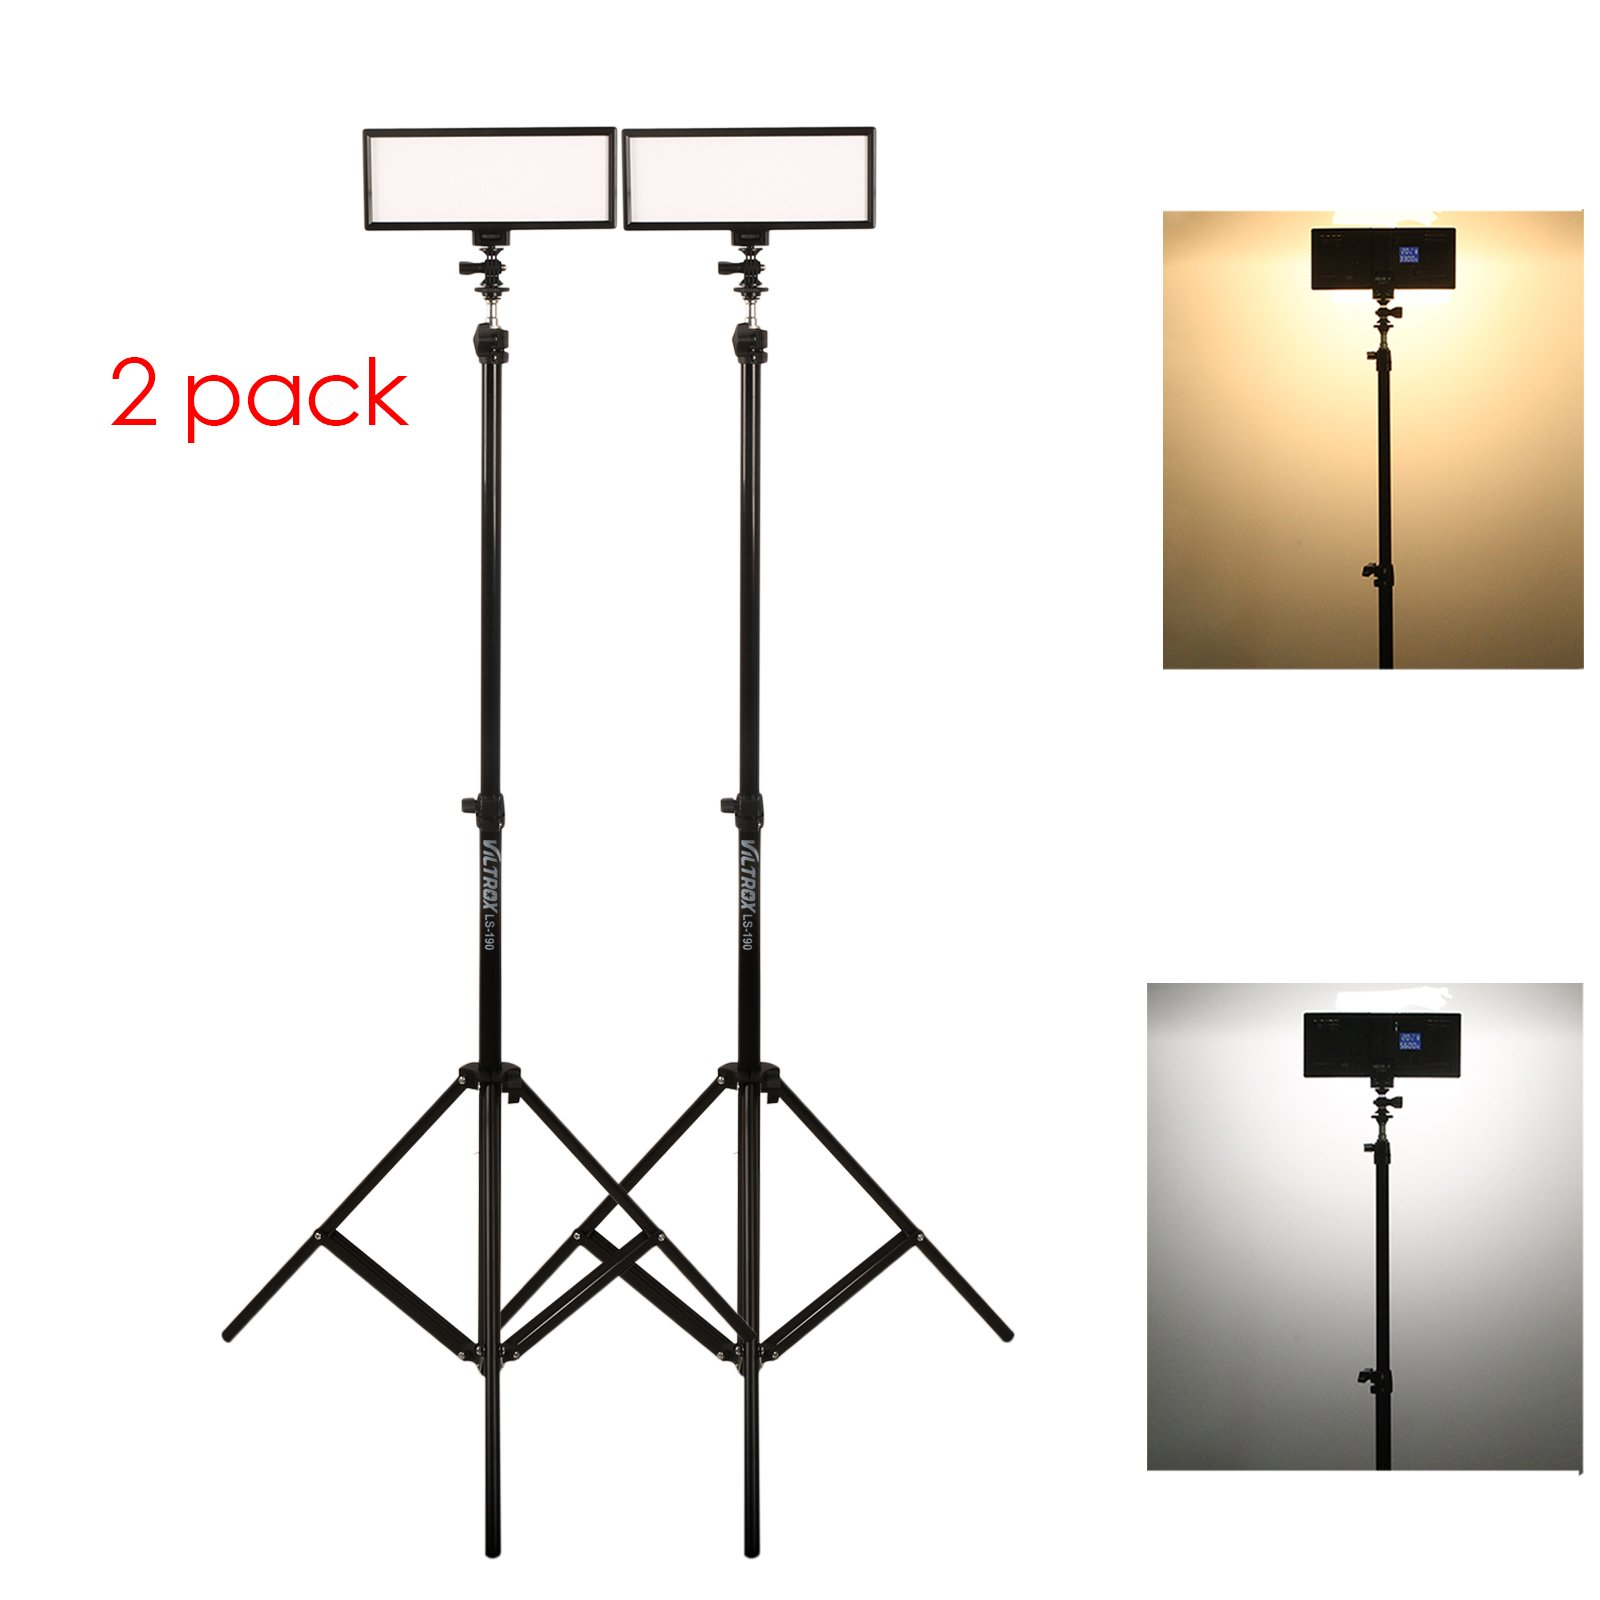 ( 2 pack) VILTROX video lighting kit,L132T LED Light with light Stand, 2m AC adapter, 0.78''/2cm Ultra Thin CRI95 5600K/3300K LED Video Light Dimmable Flat Panel Light